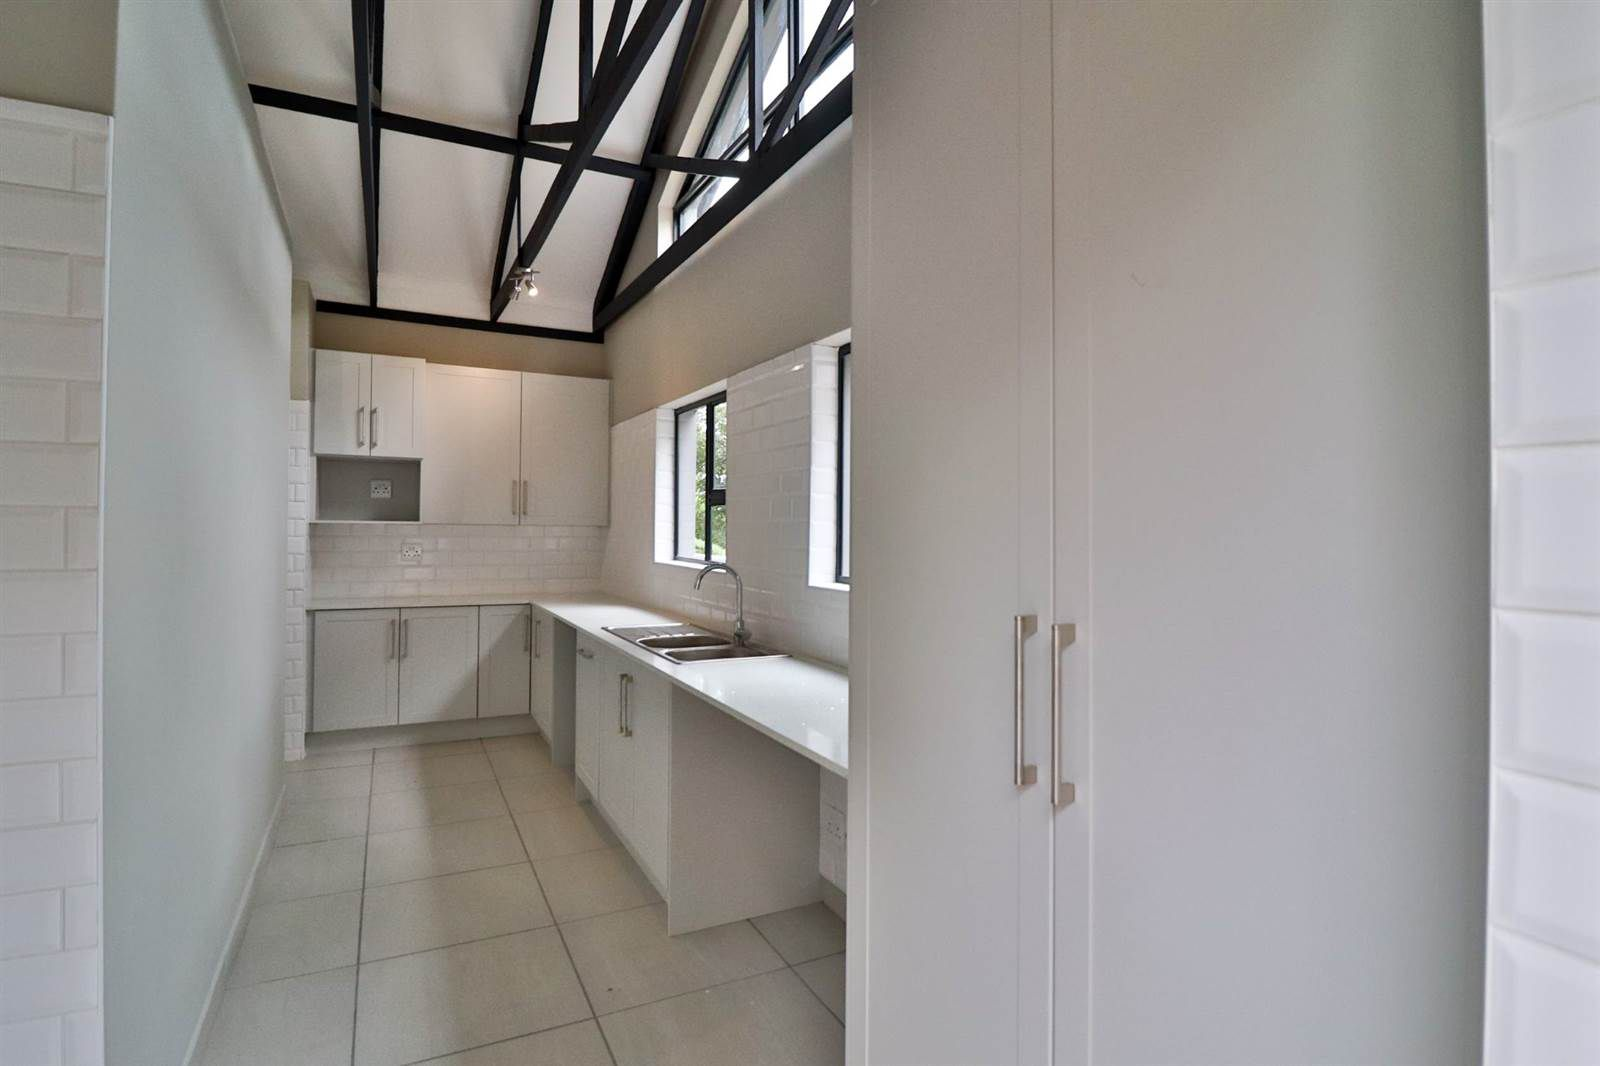 House in Xanadu Eco Park - Light filled scullery